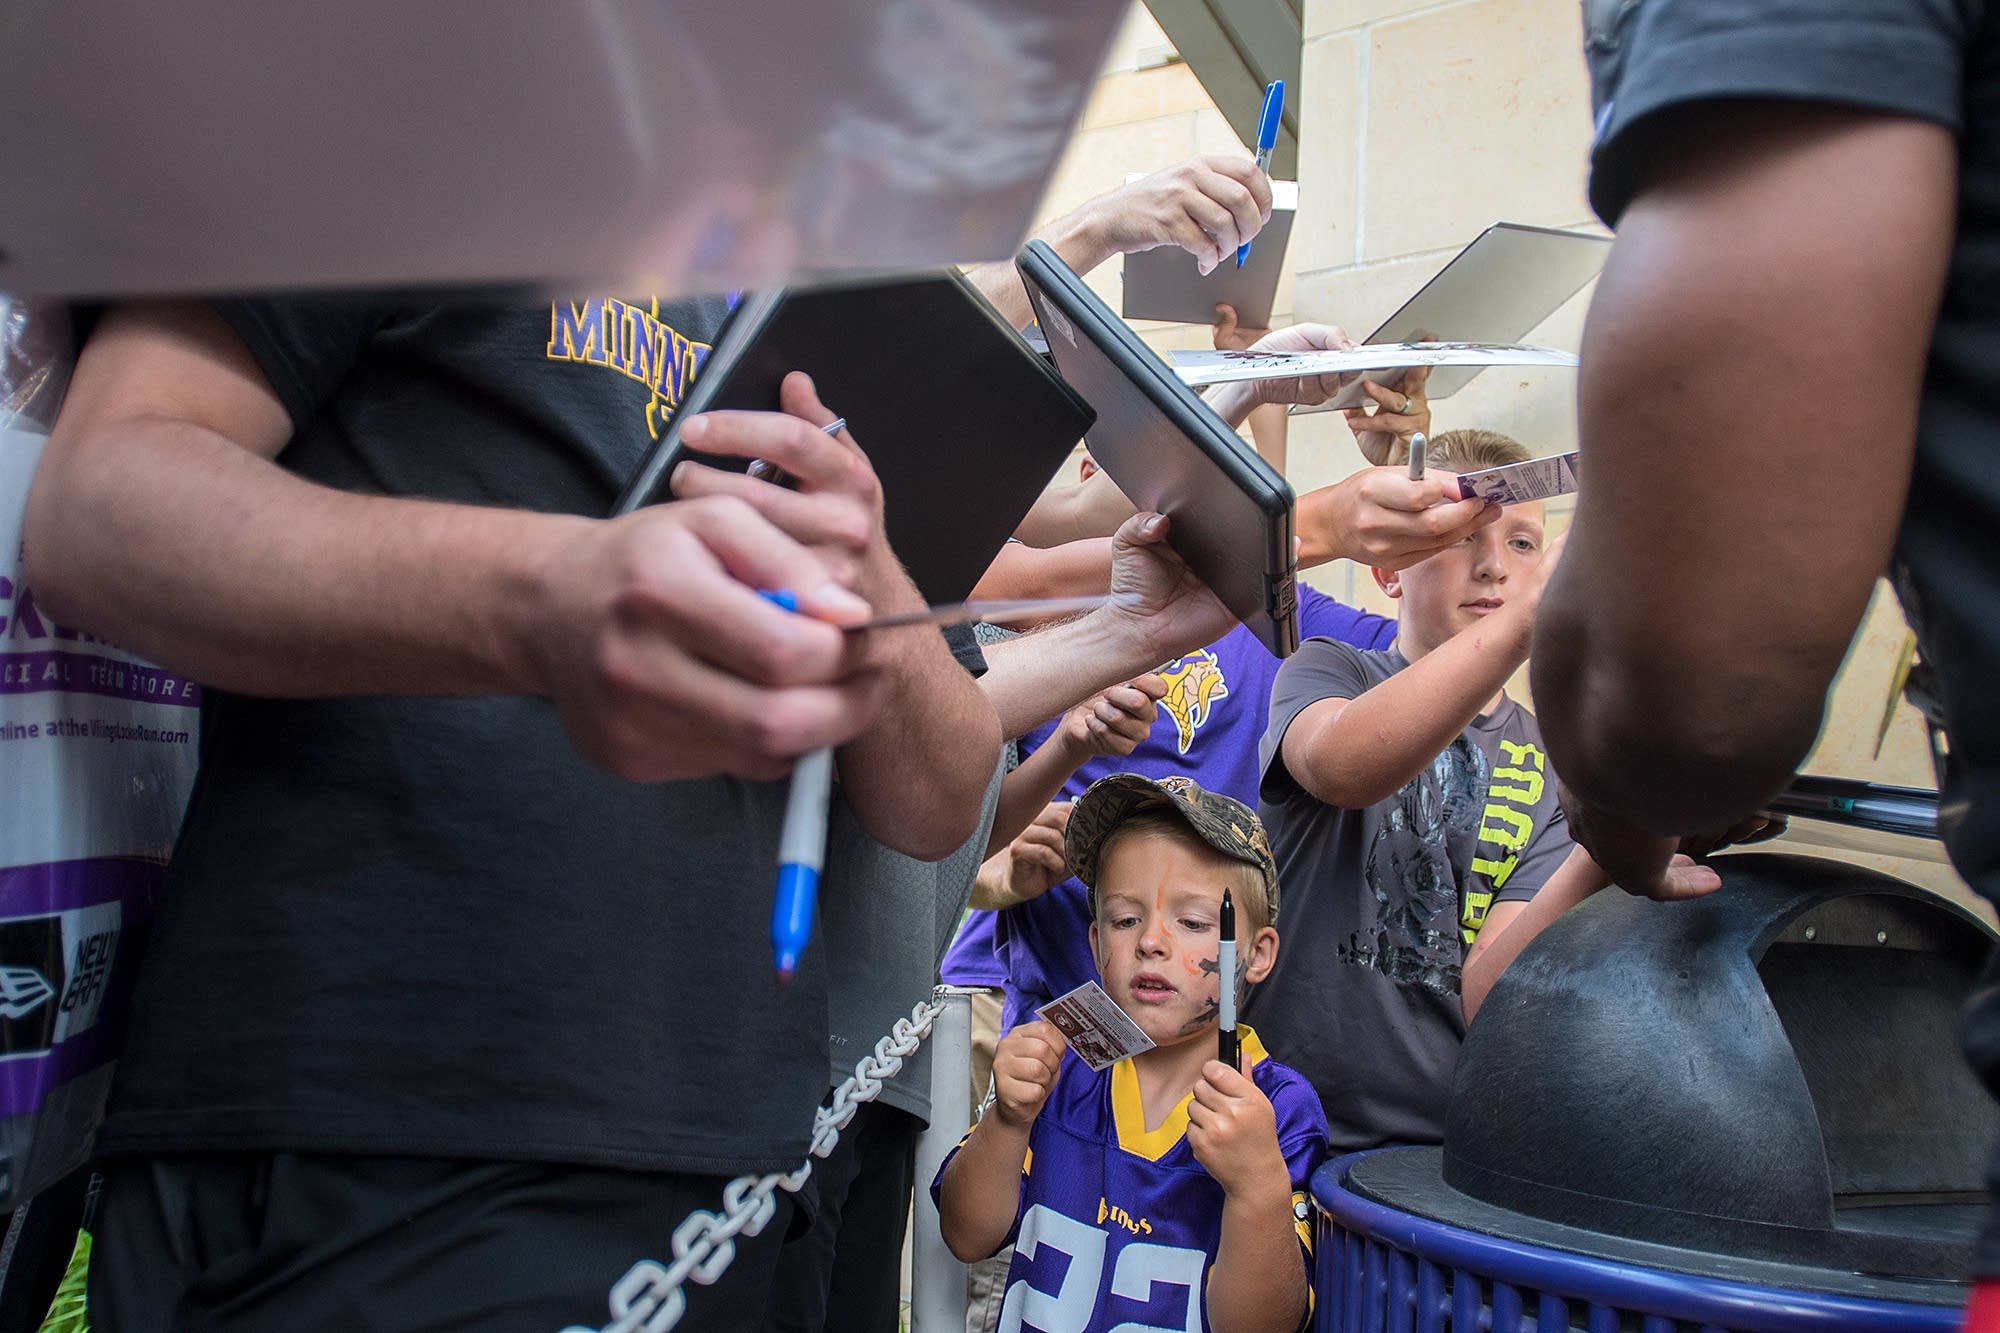 Russell Smith, 4, looks at a freshly signed autograph from Dalvin Cook.